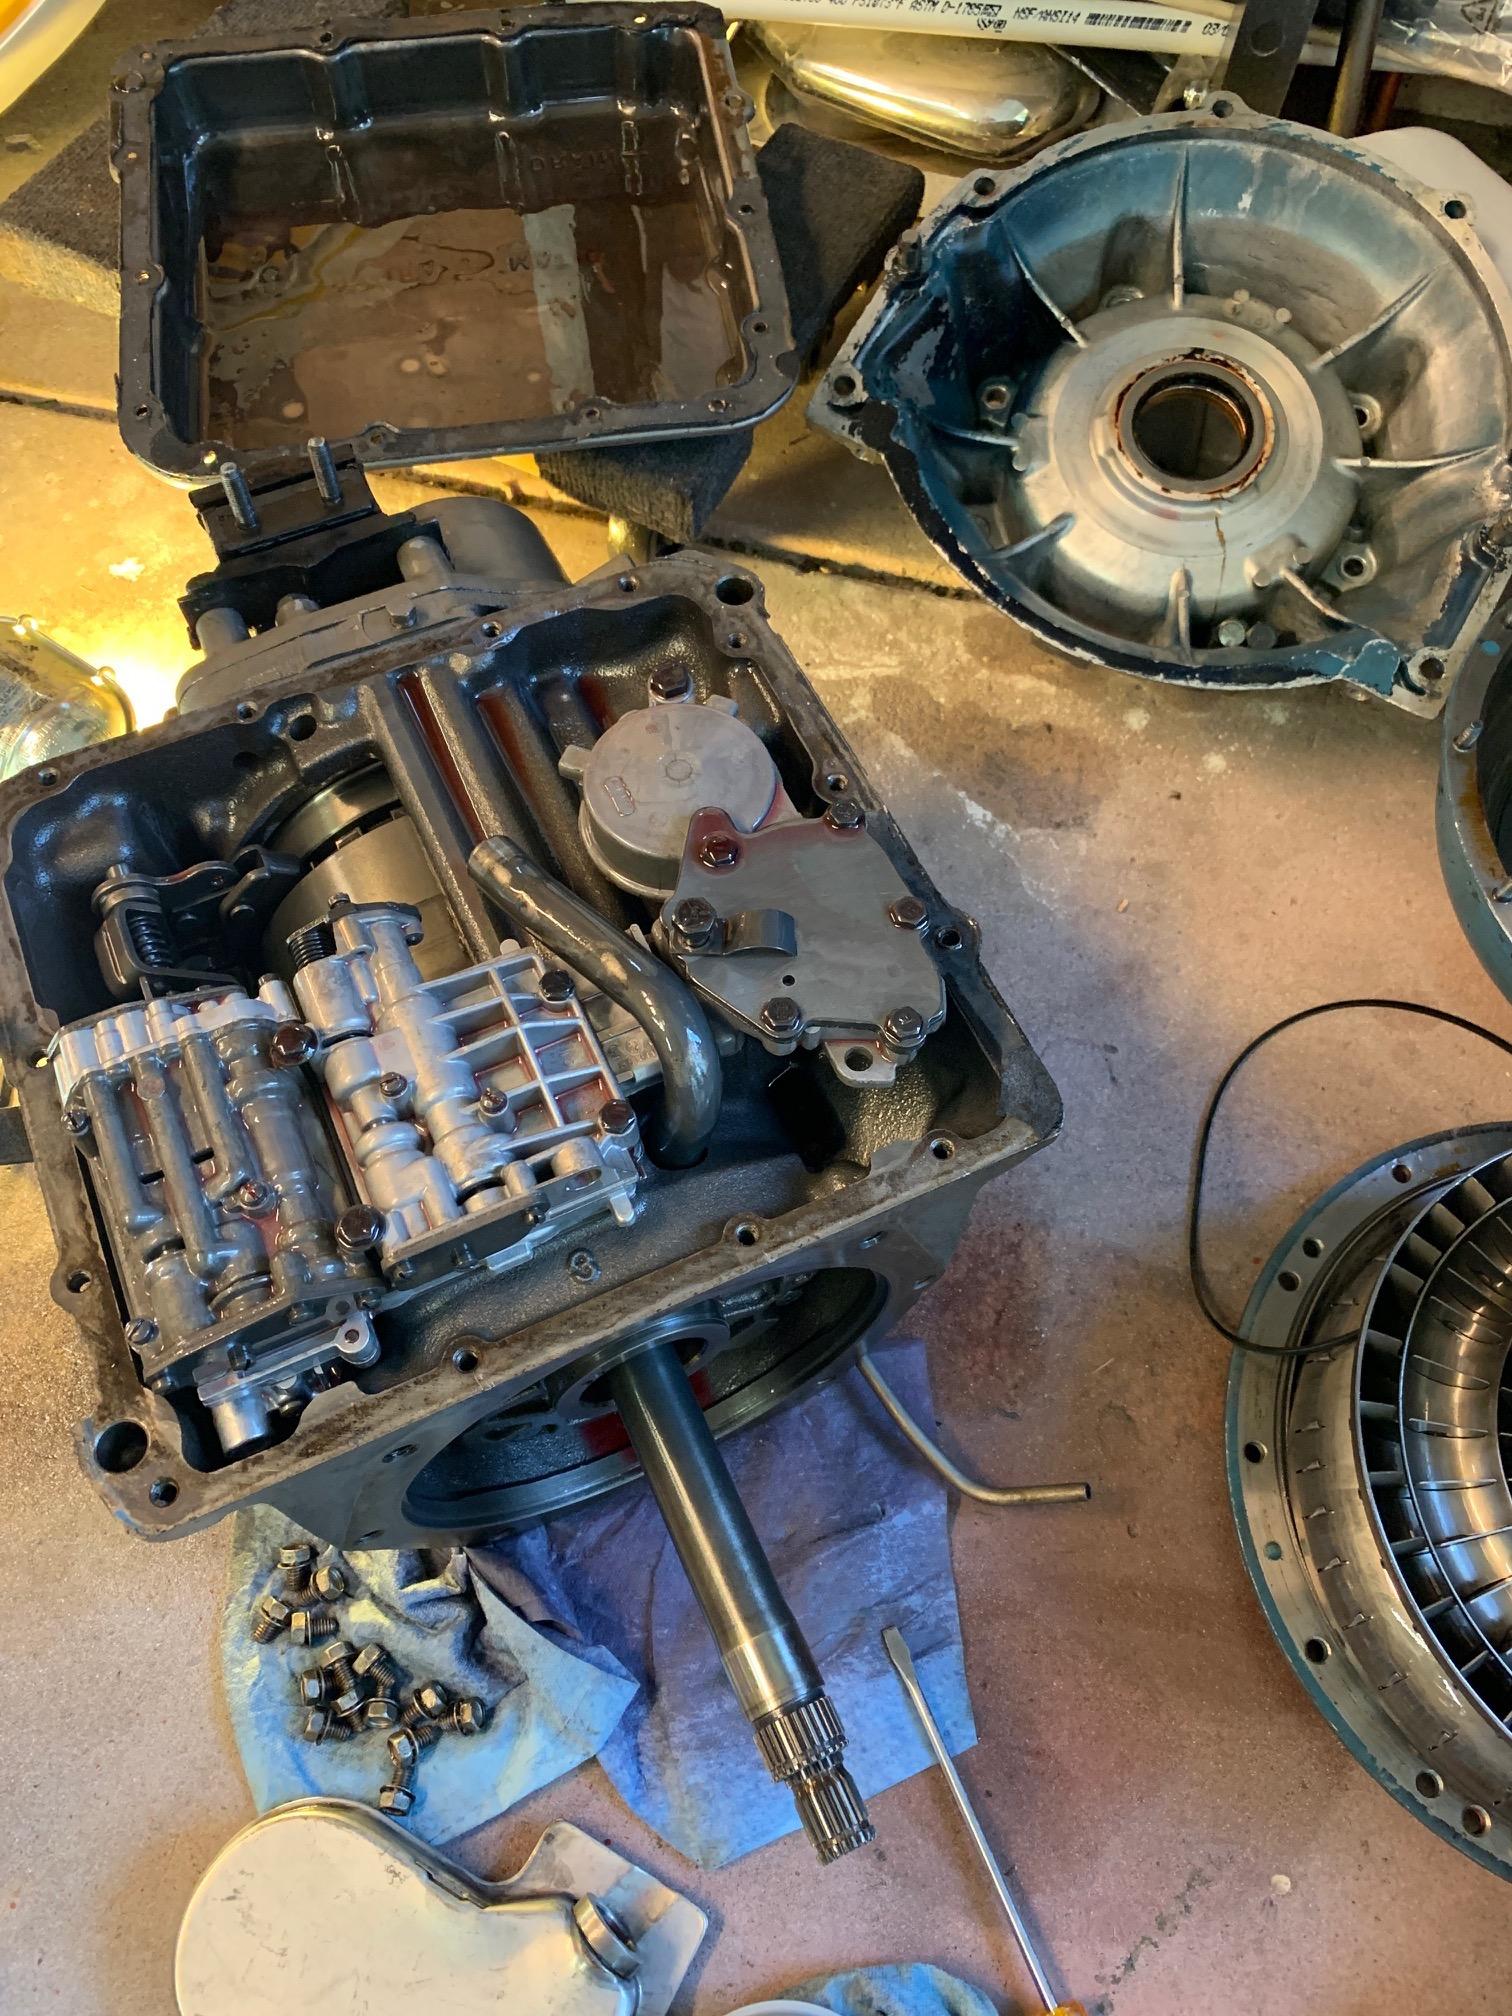 Digging into the guts of a transmission is not for the faint at heart. It's the automotive equivalent of brain surgery. iPhone XR.